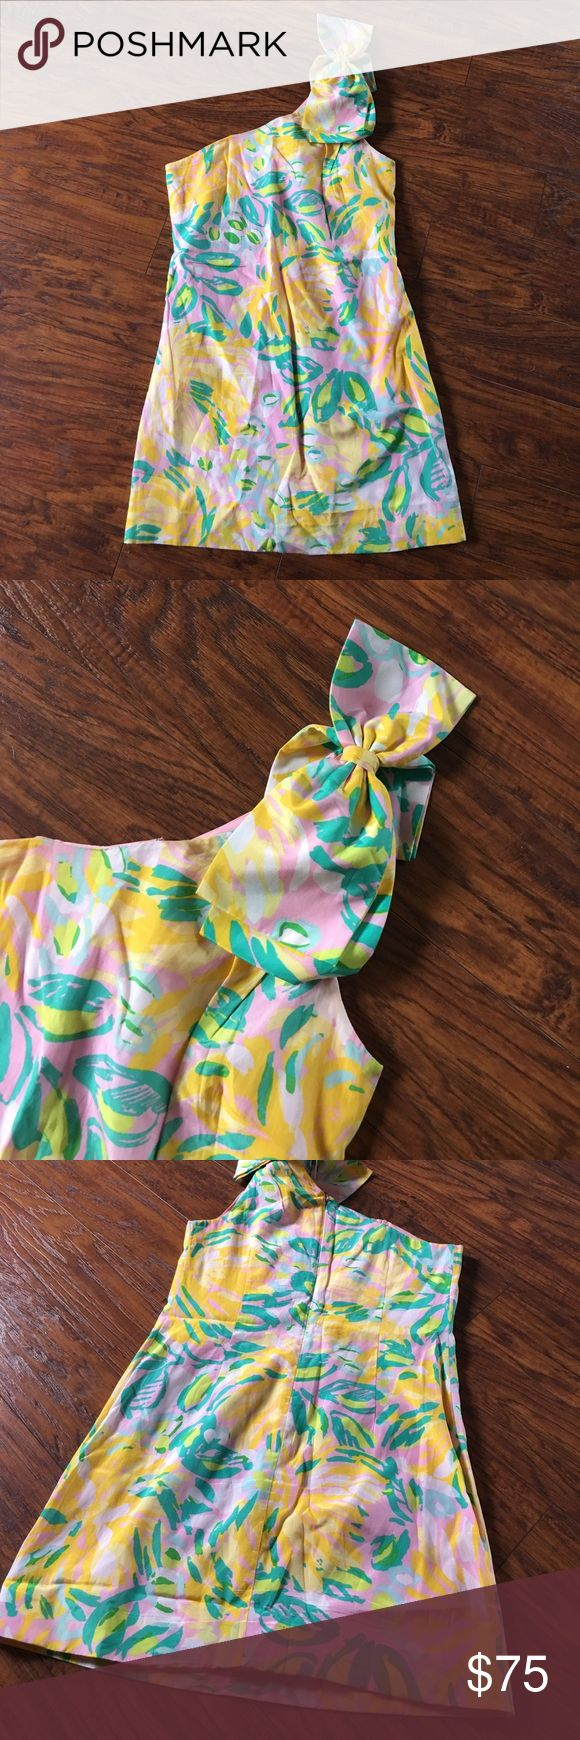 "SALE❤️☀️Lilly Pulitzer Chloe Lilet Blossom Dress Beautiful Lilly Pulitzer dress with a one shoulder strap and bow on top. From the top of the shoulder to the bottom of the dress is 31 1/2"". Great condition. There is a small amount of make up inside chest of dress but it's pictured and cannot see from the outside. Lilly Pulitzer Dresses Mini"